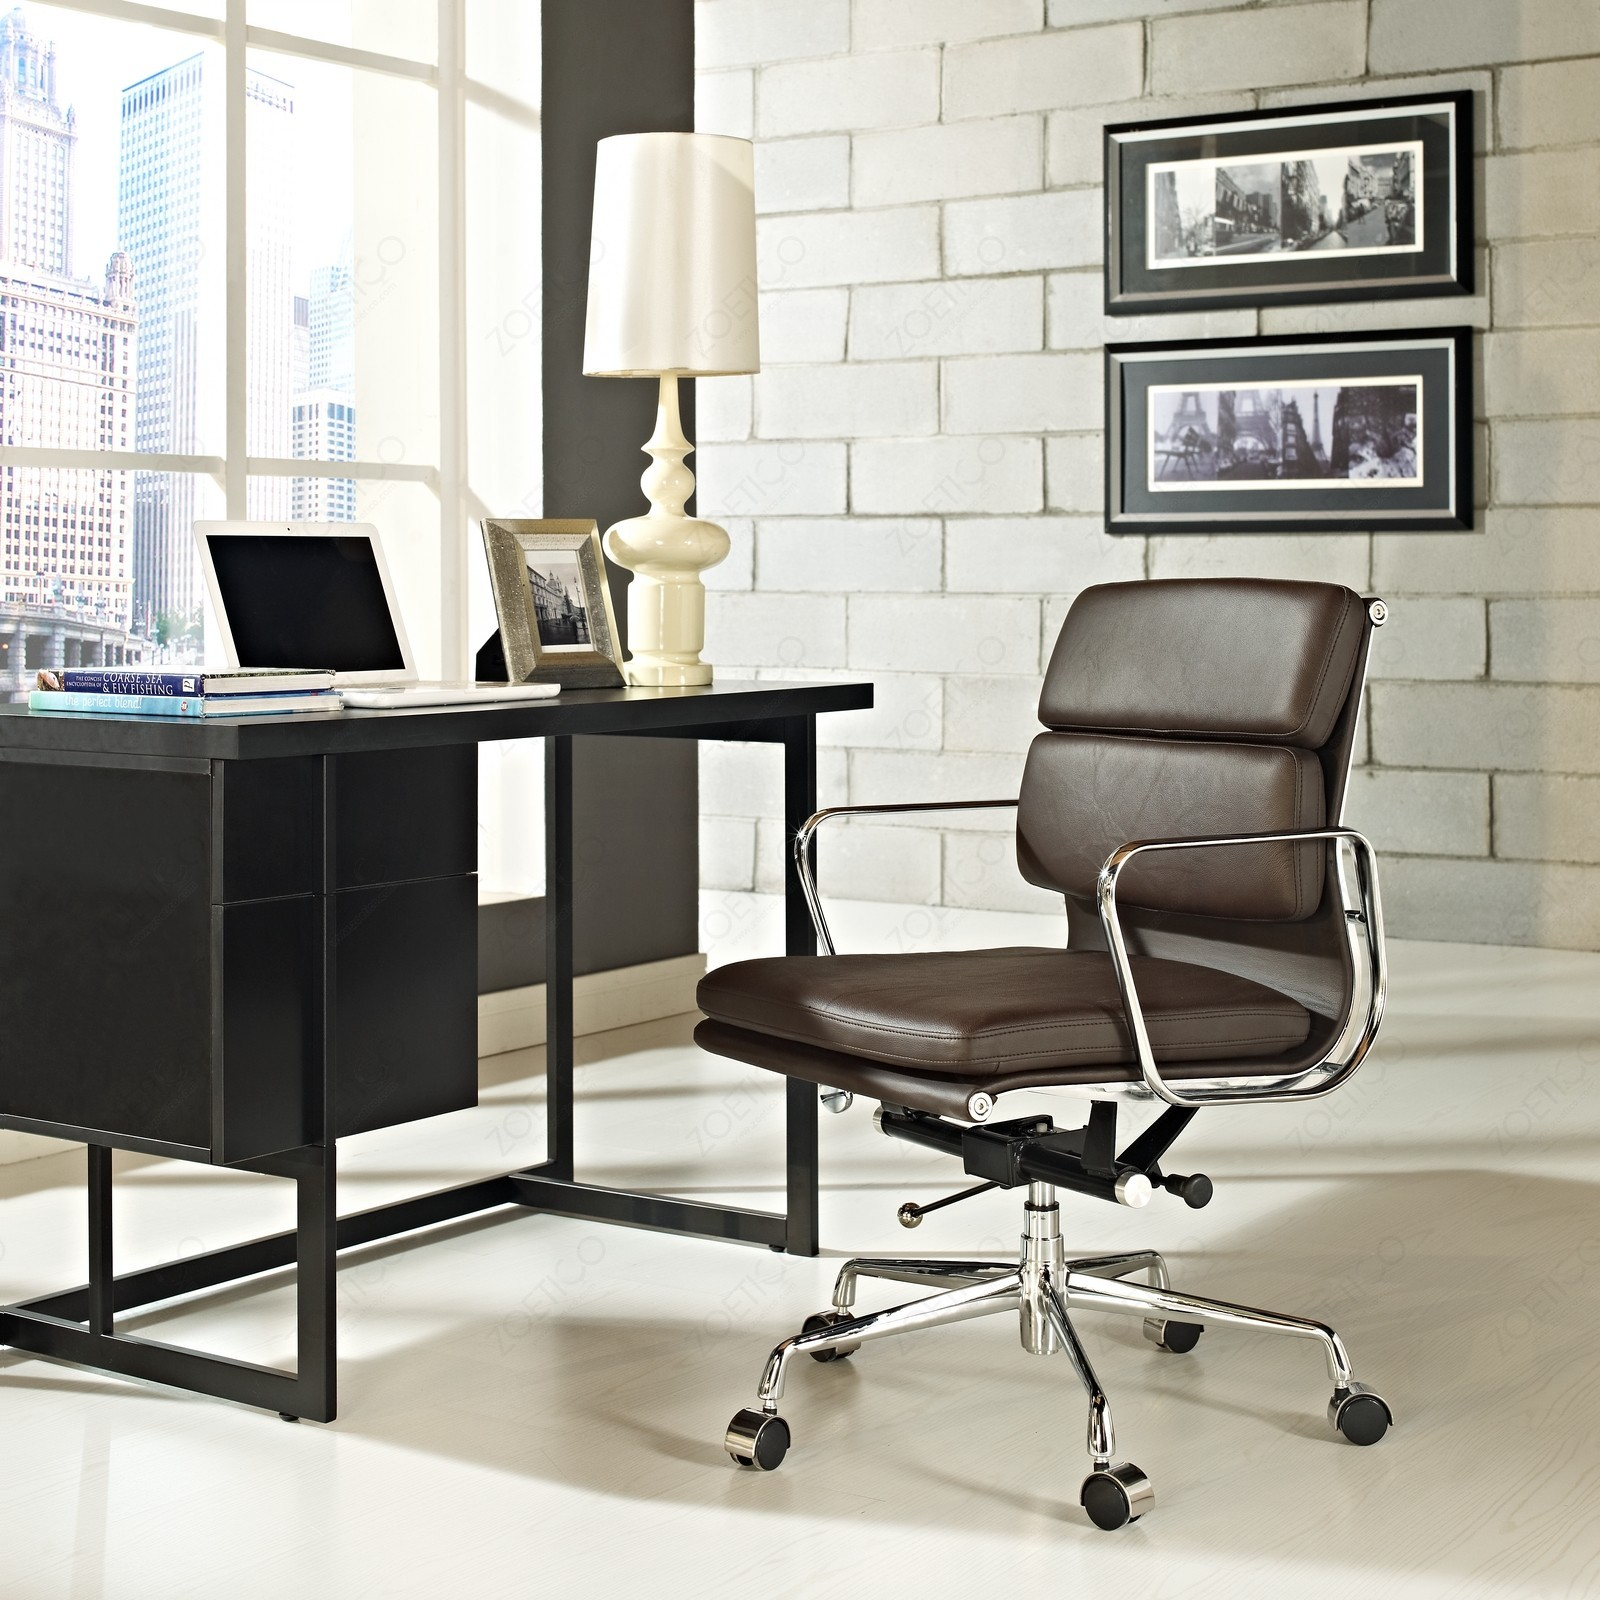 Replica Eames Office Chair Soft Pad LB Murray amp Wells : eames chair from murrayandwells.co.za size 1600 x 1600 jpeg 454kB